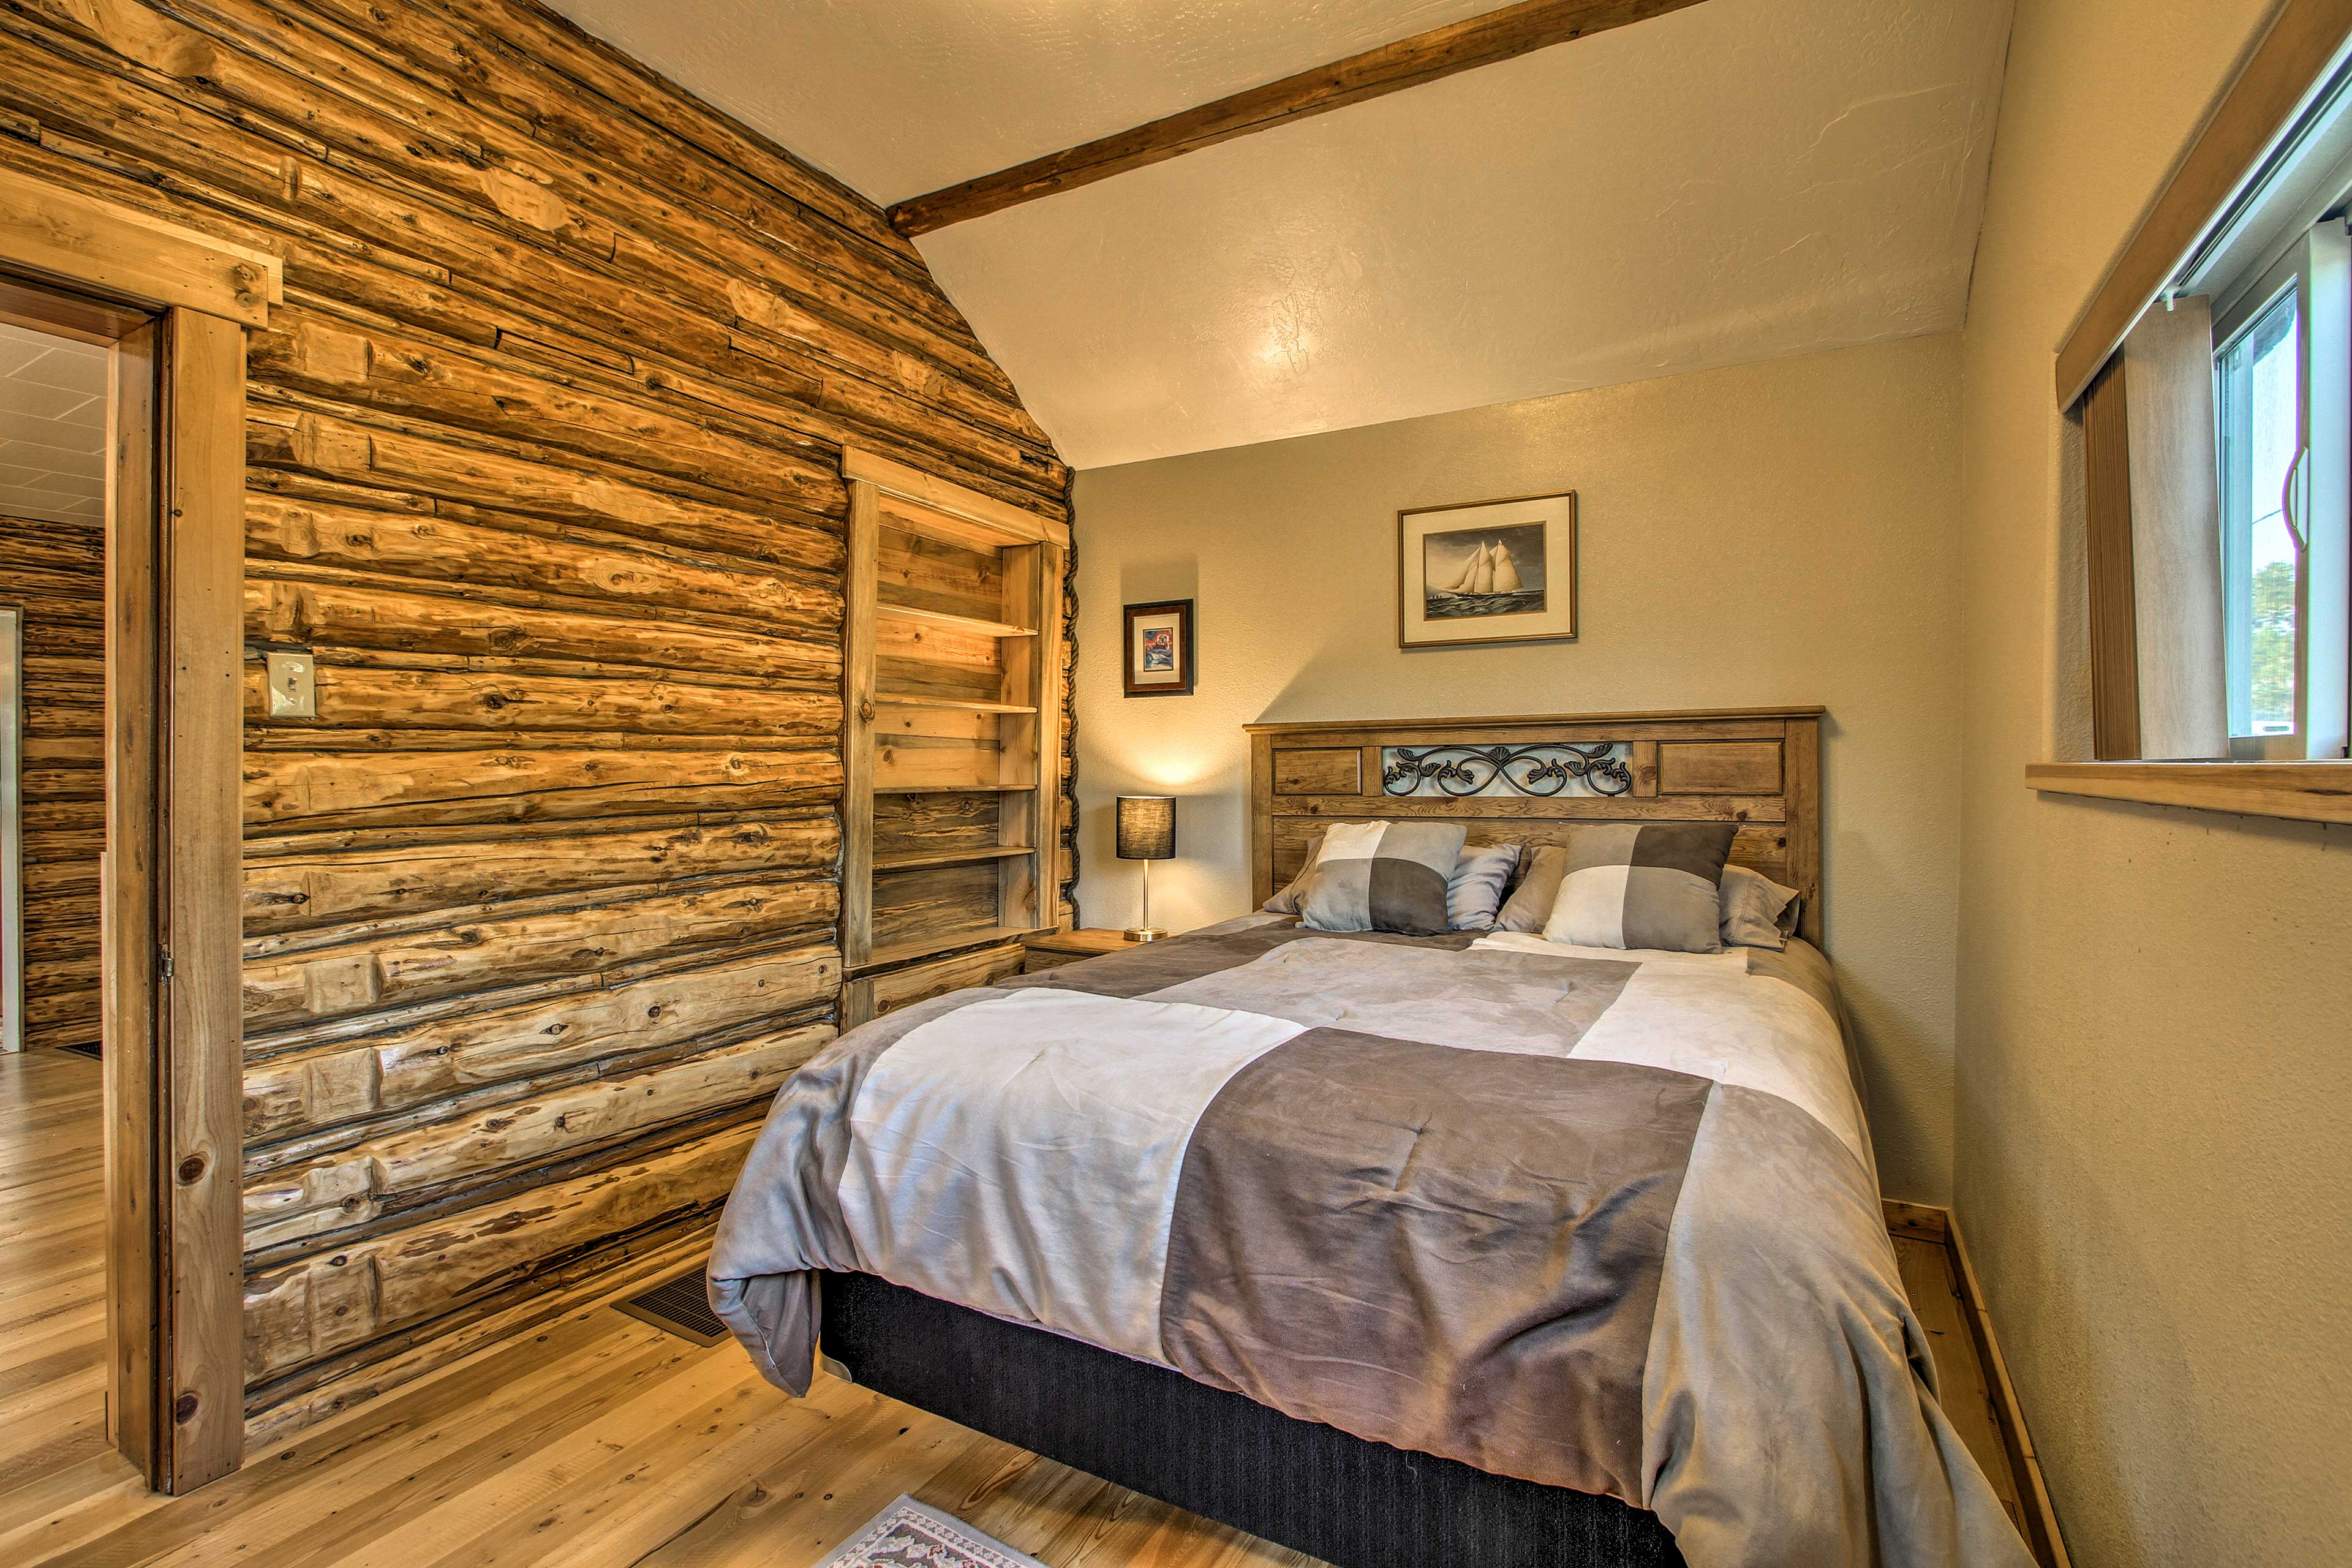 Relax on the queen bed in the first bedroom.